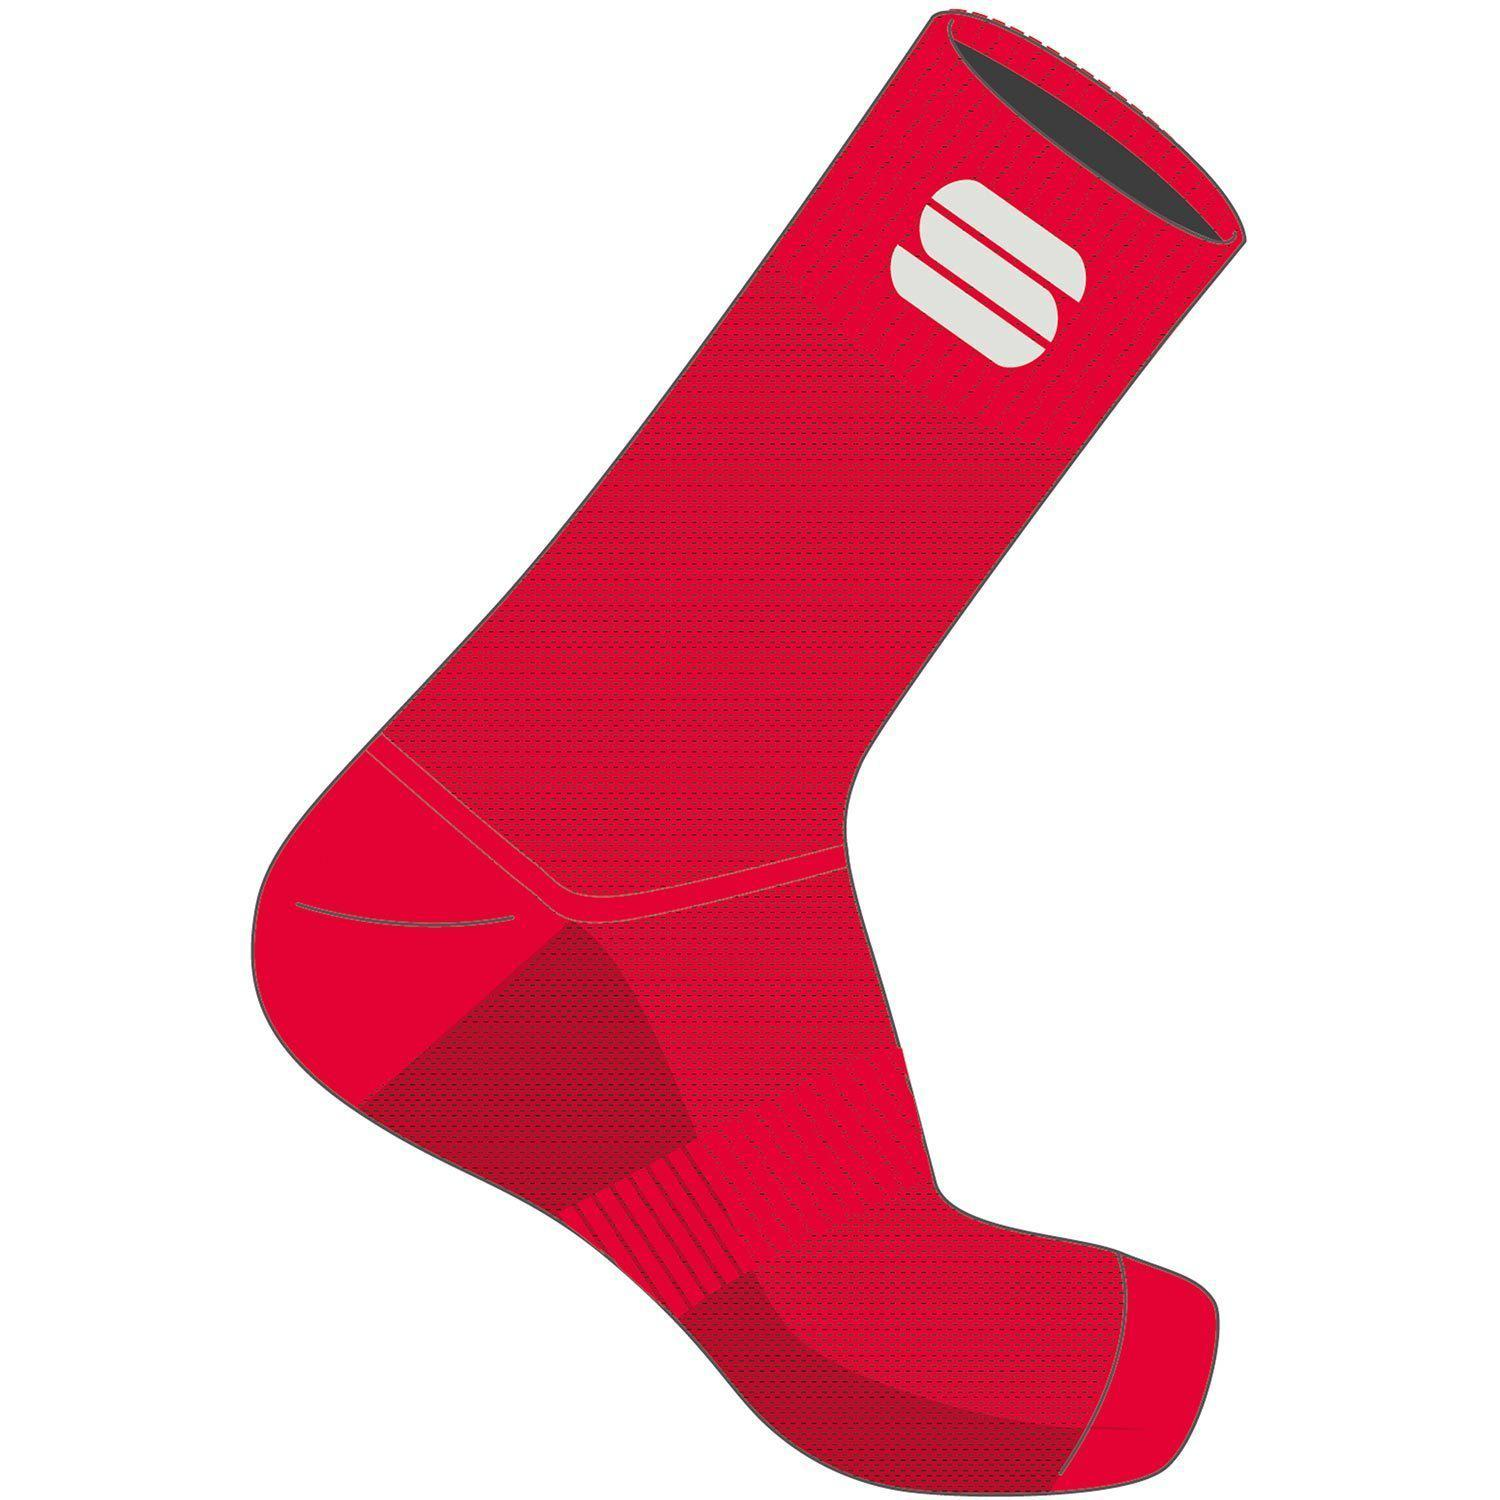 Sportful-Sportful Matchy Socks-Red-S-SF2107656712-saddleback-elite-performance-cycling